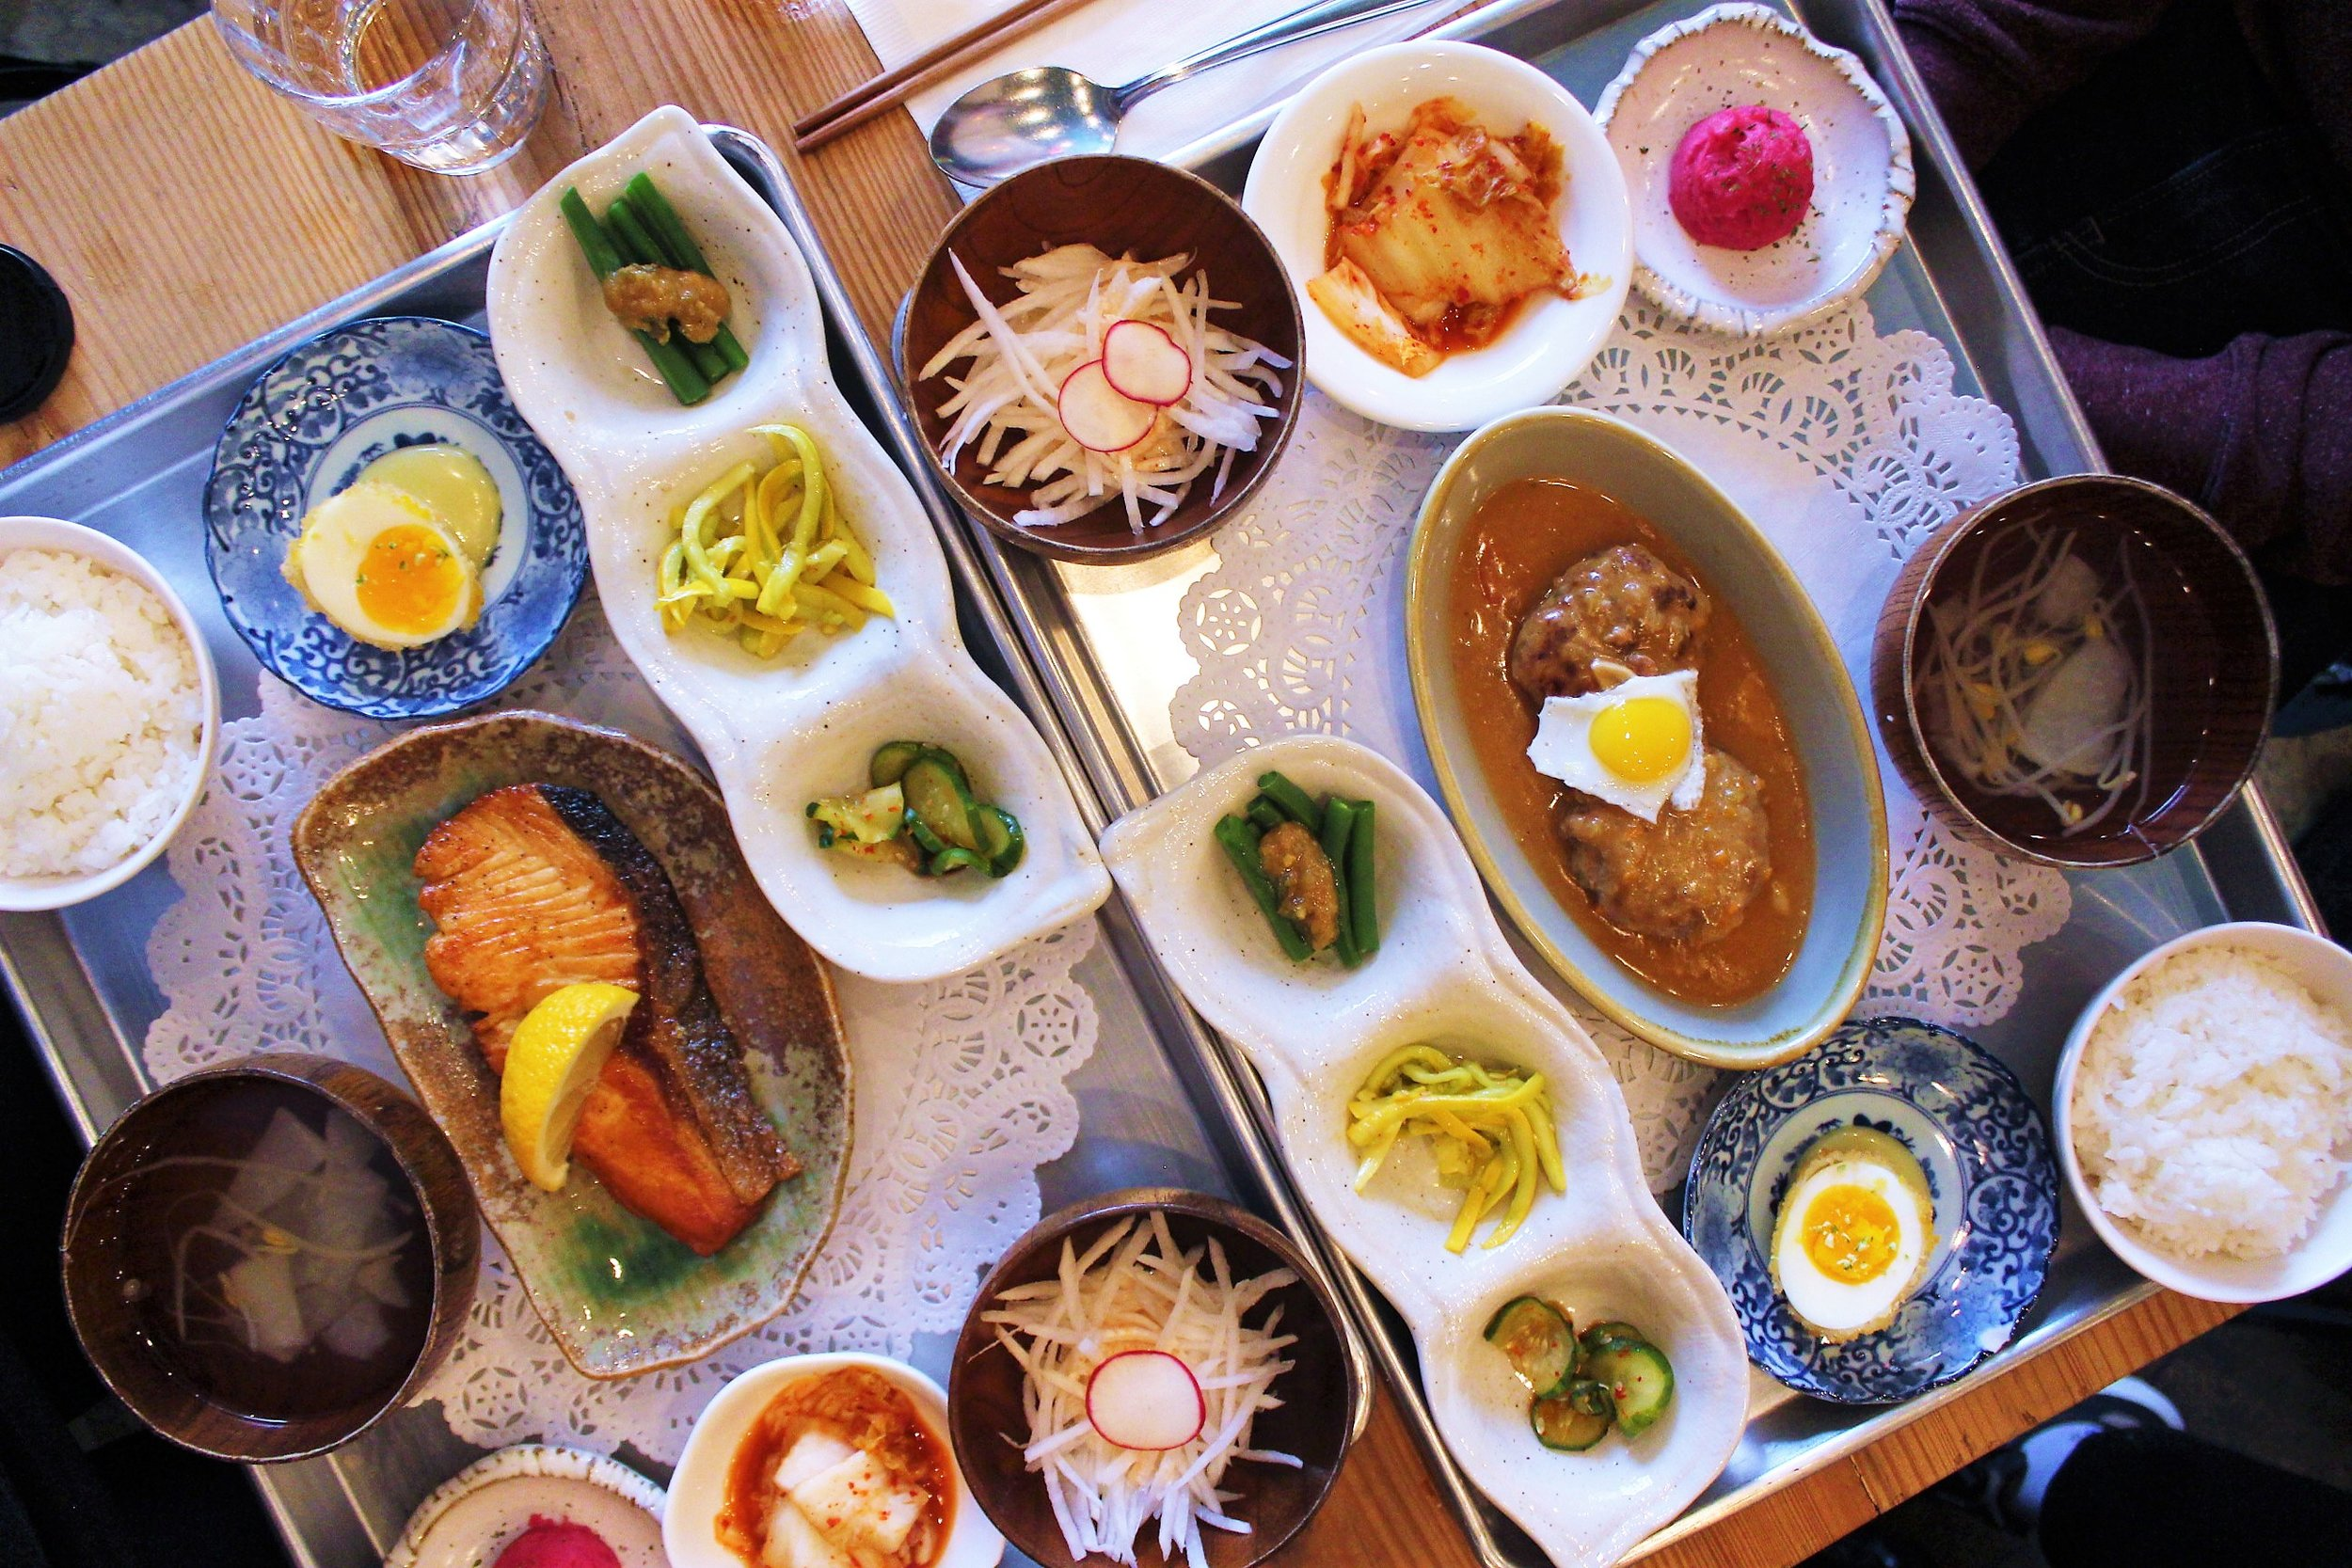 Brunch spread at Her Name is Han in New York City